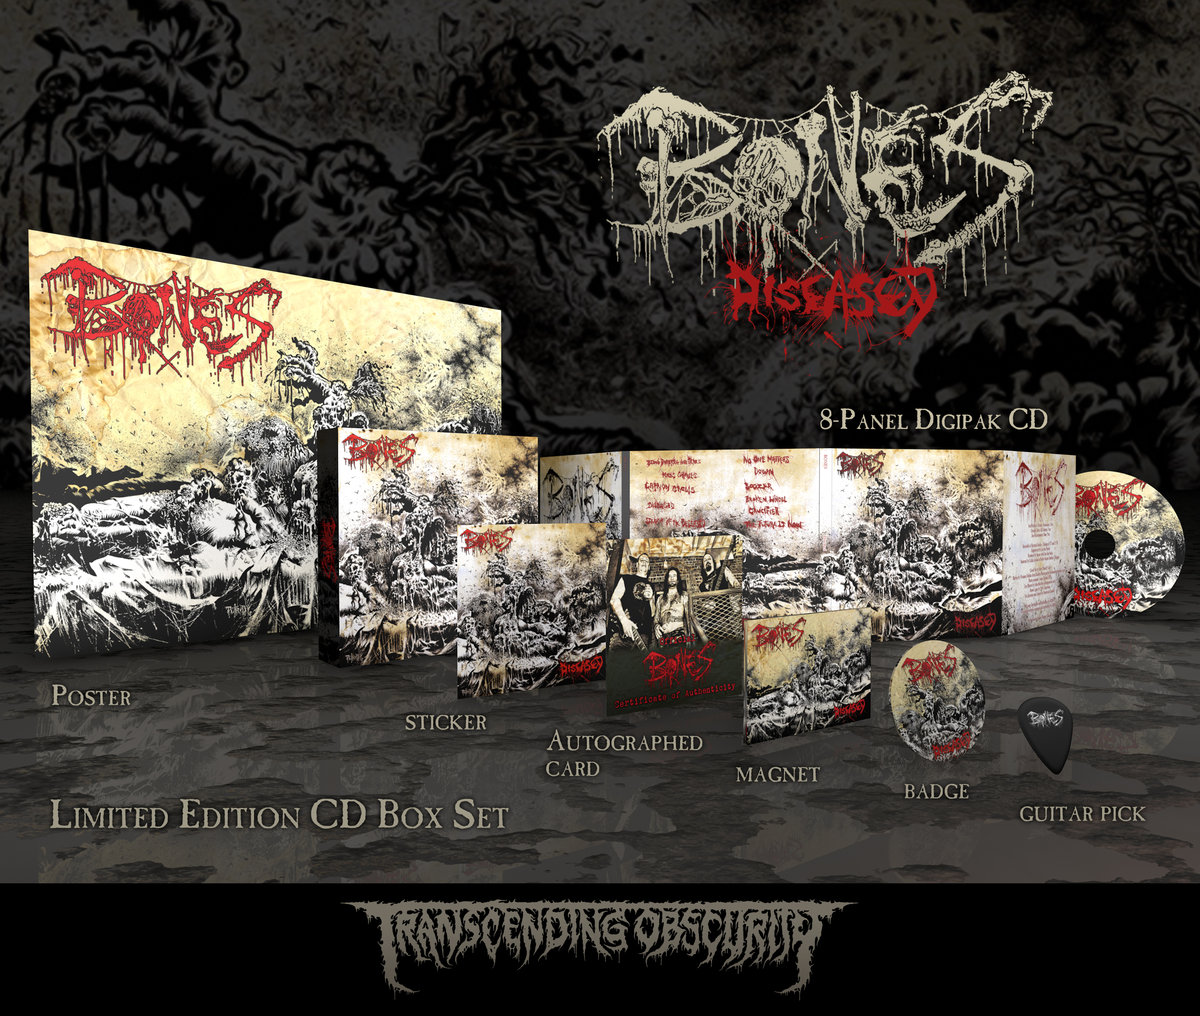 BONES - 'Diseased' Limited Edition Autographed Box Set (SPECIAL PRE-ORDER  PRICE!) - TRANSCENDING OBSCURITY